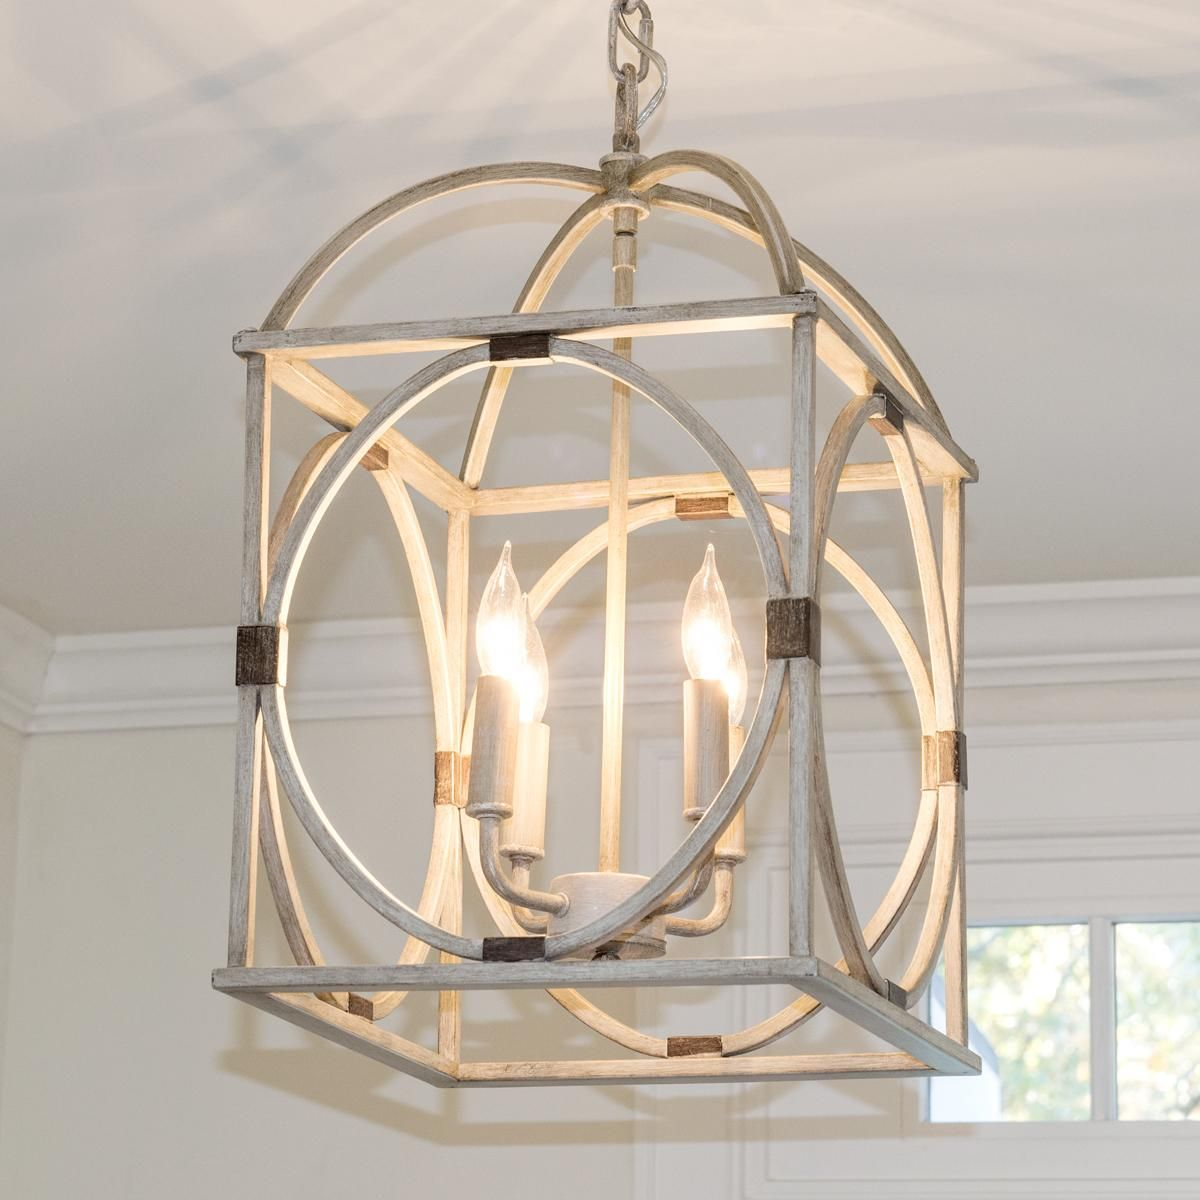 Circle Lattice Hanging Lantern - 4 Light